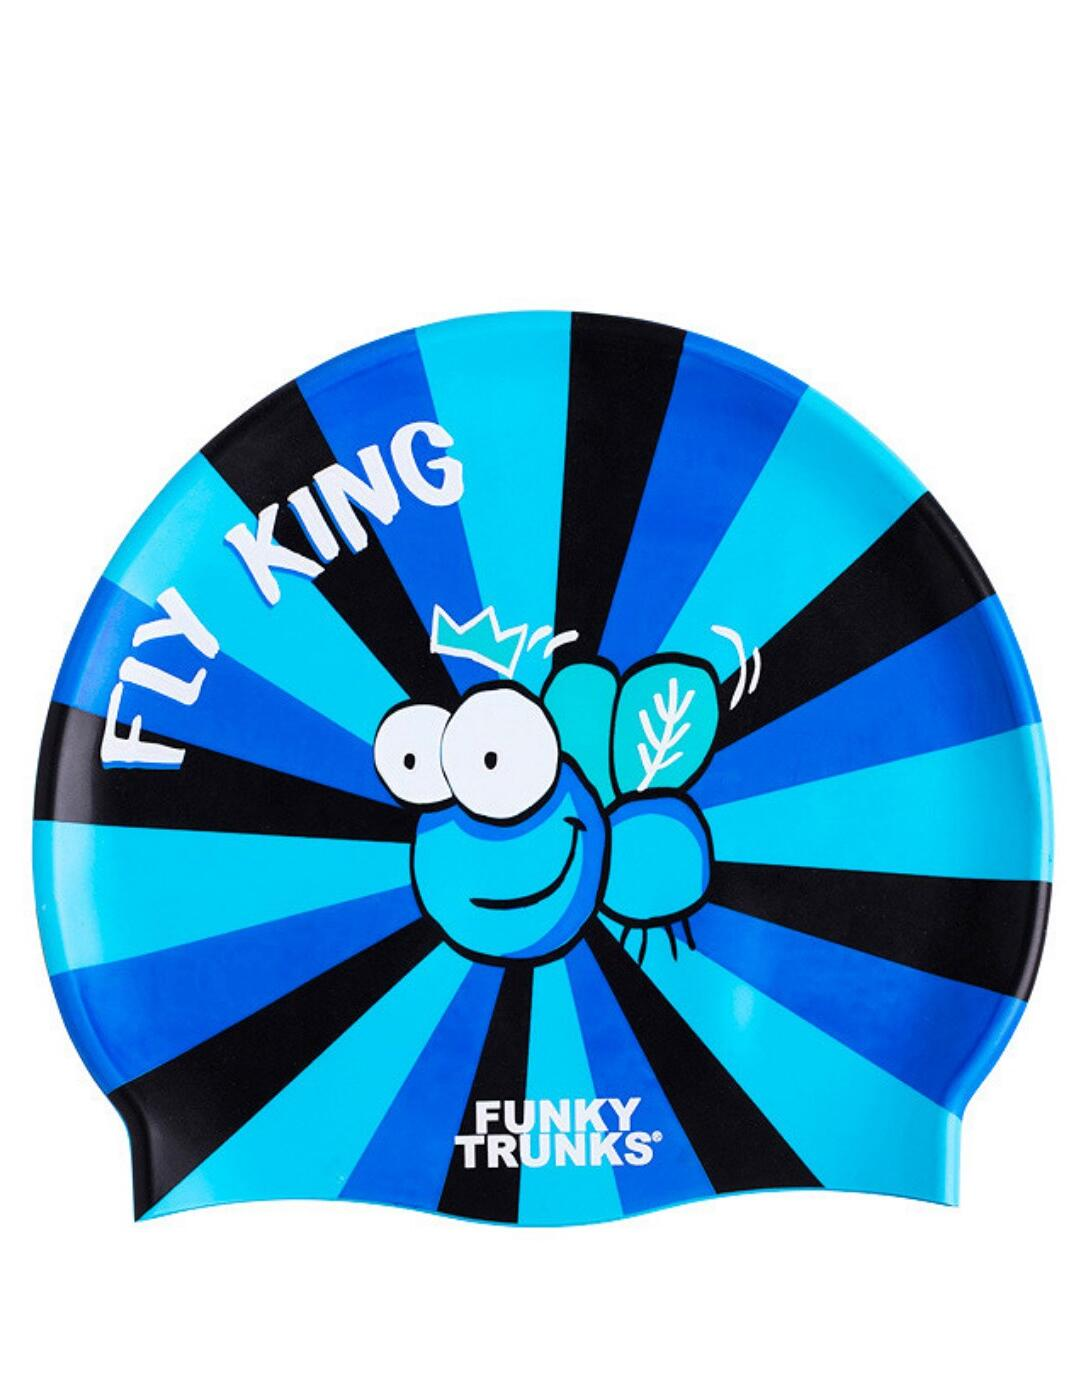 FT9901172 Funky Trunks Silicone Swimming Cap - FT9901172 Fly King